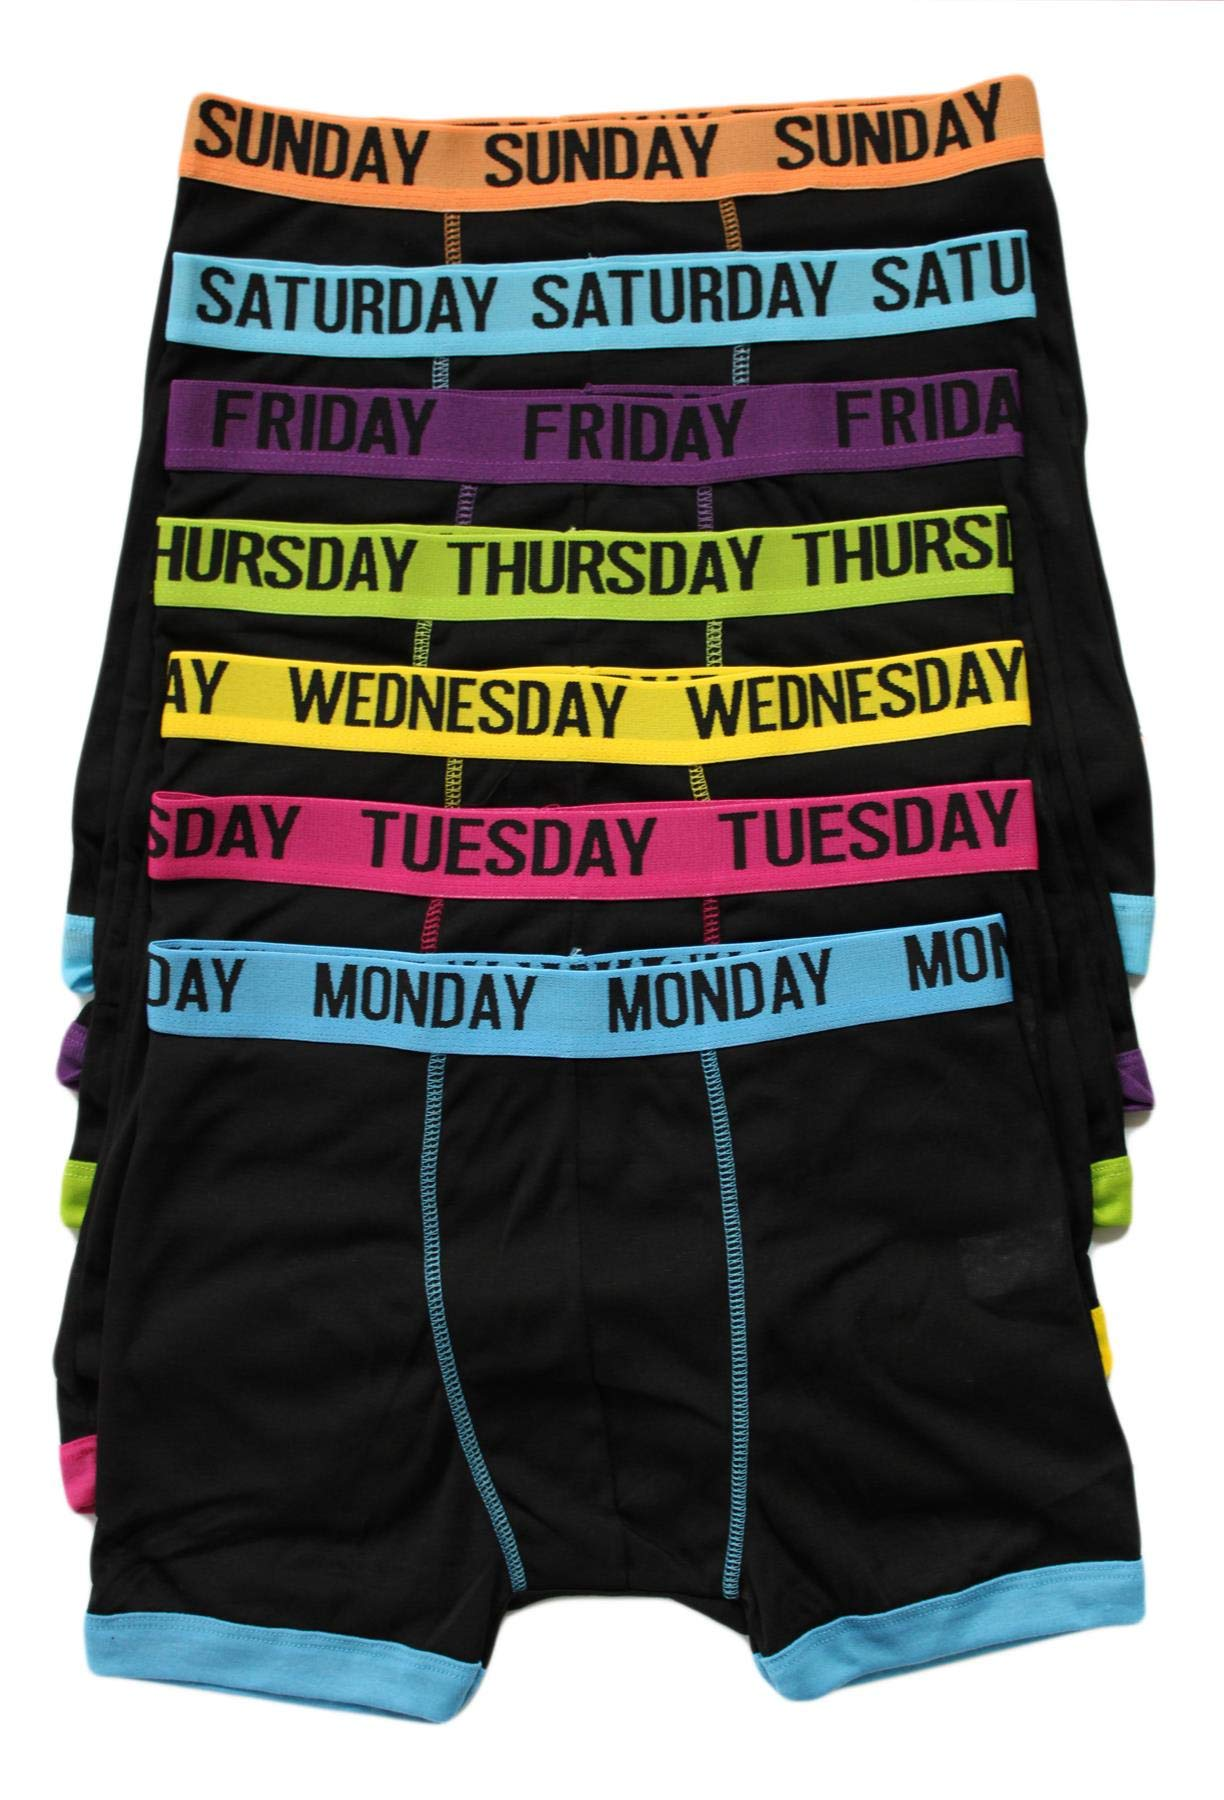 7 Days Of The Week Boxer Shorts Men/'s 7 Boxers Trunk Underwear Small To XXL